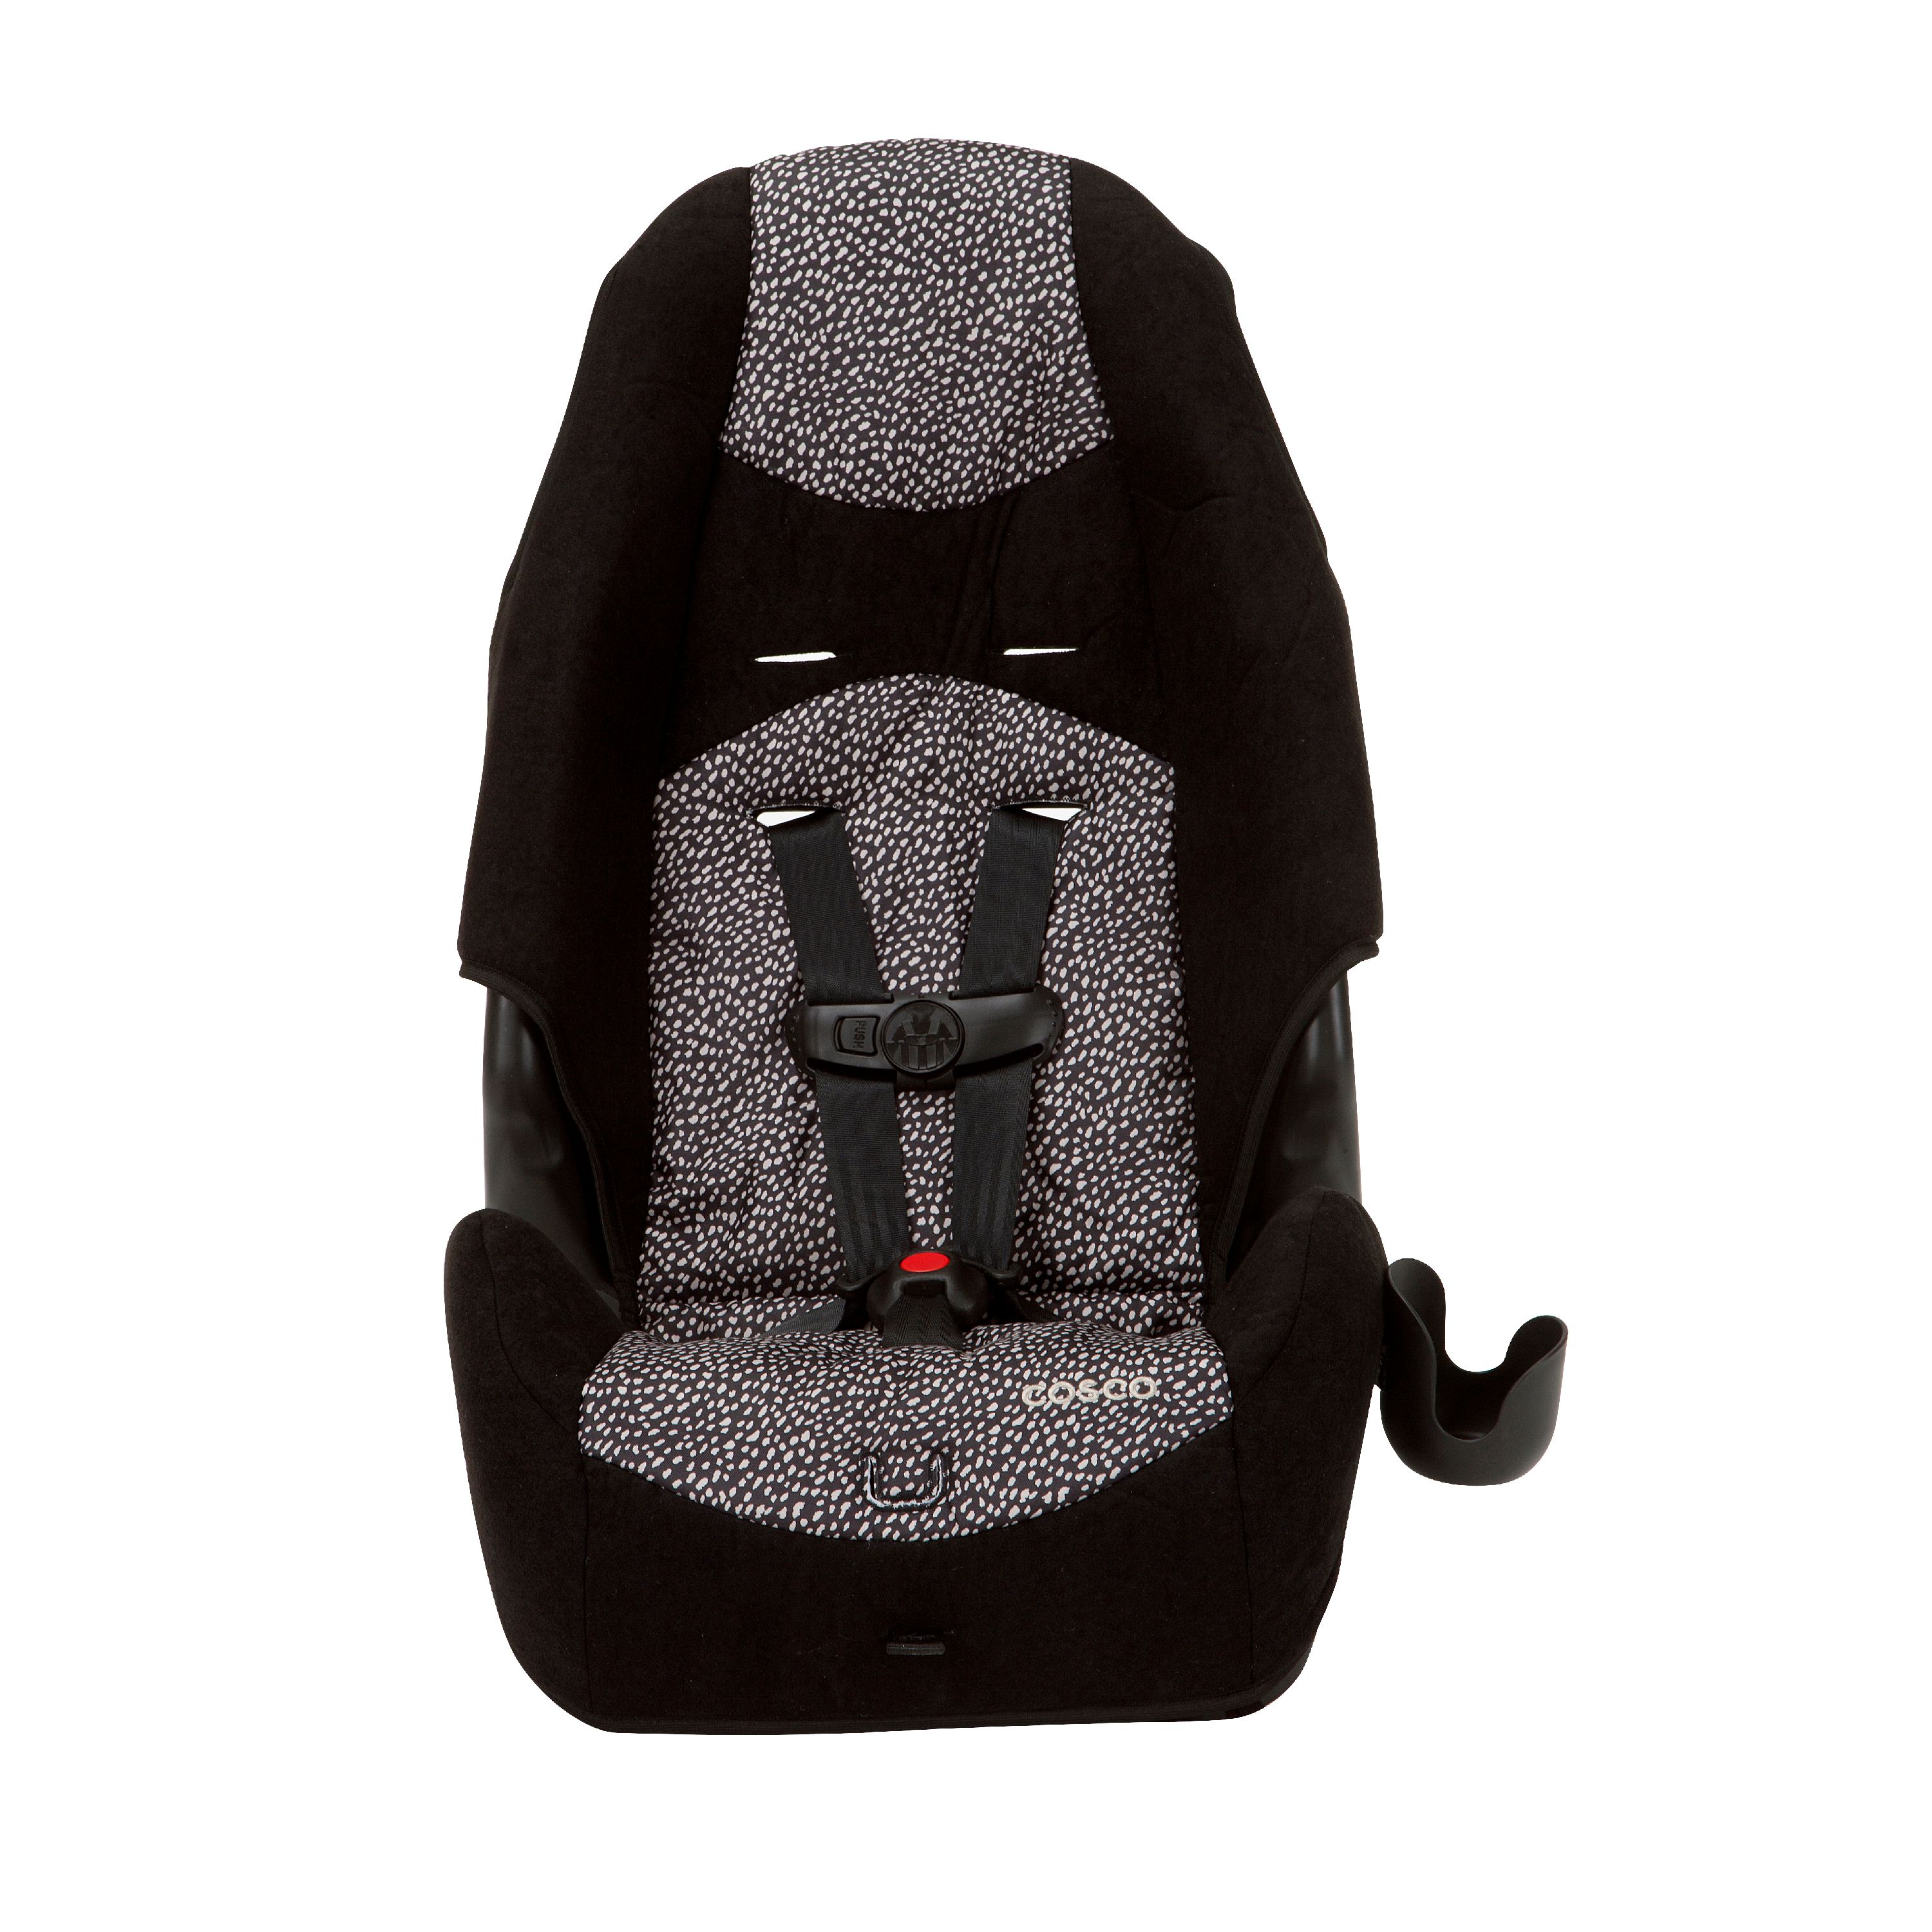 Cosco Highback 2-in-1 Harness Booster Car Seat, Speckle